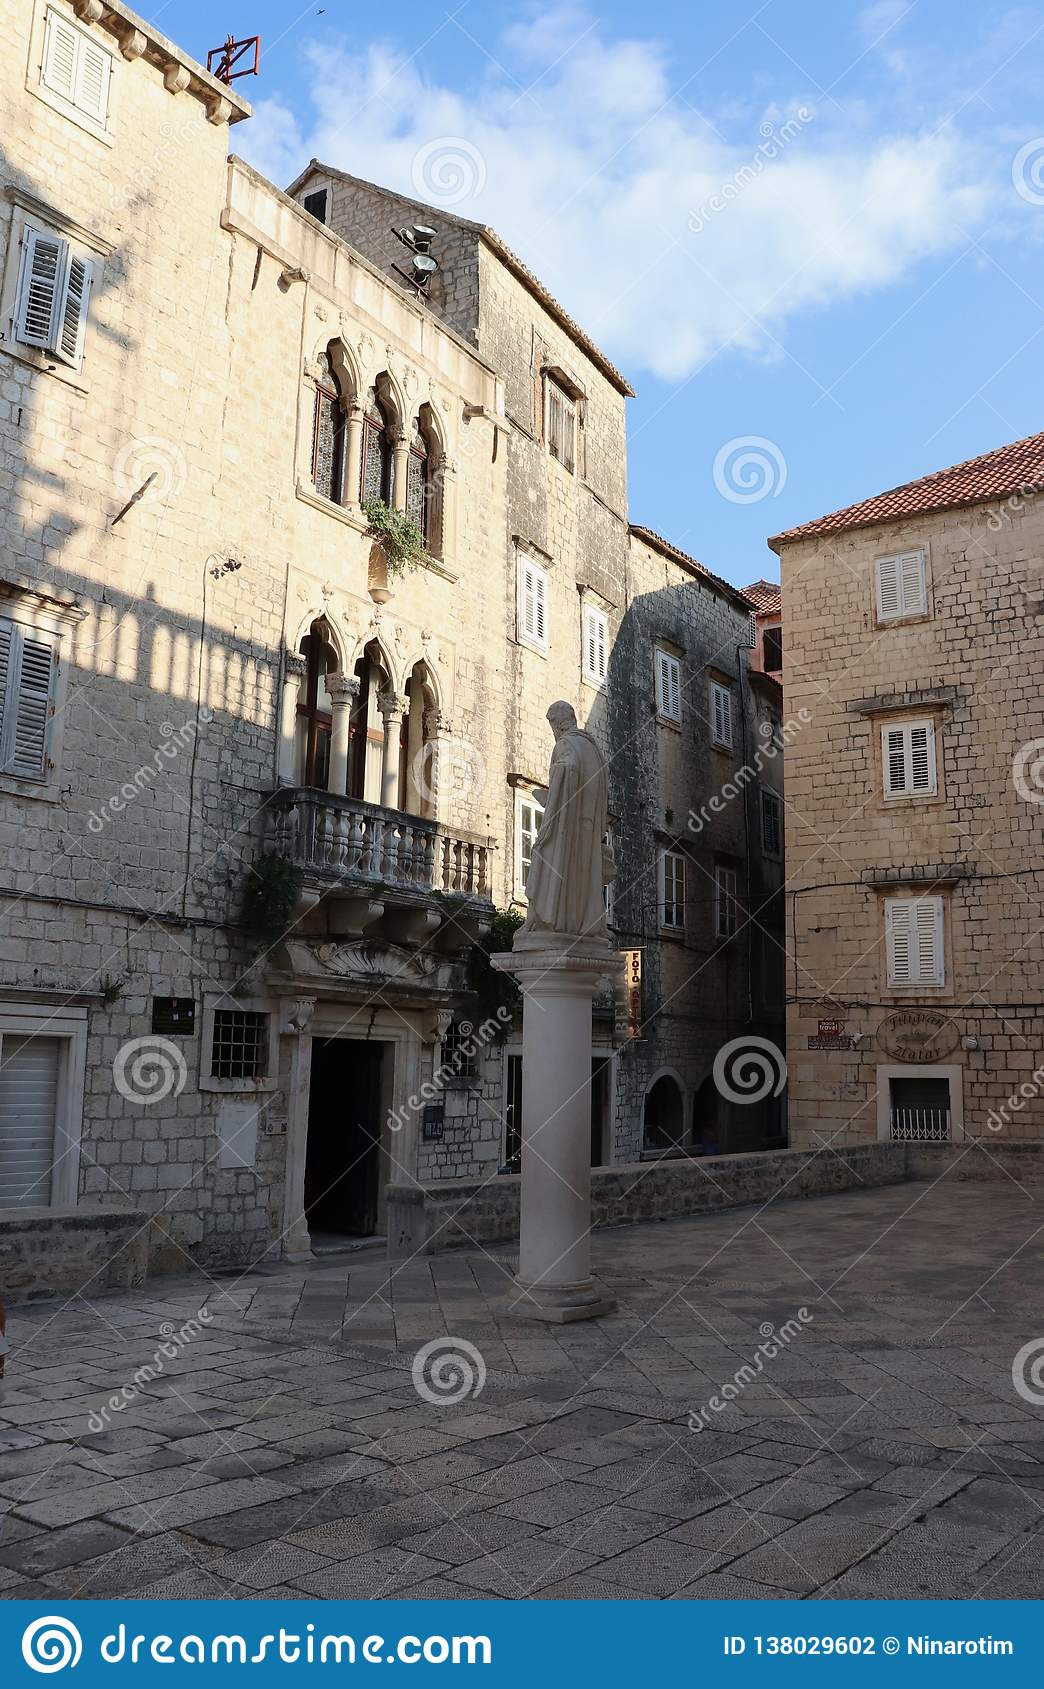 Palace in the old city of Trogir